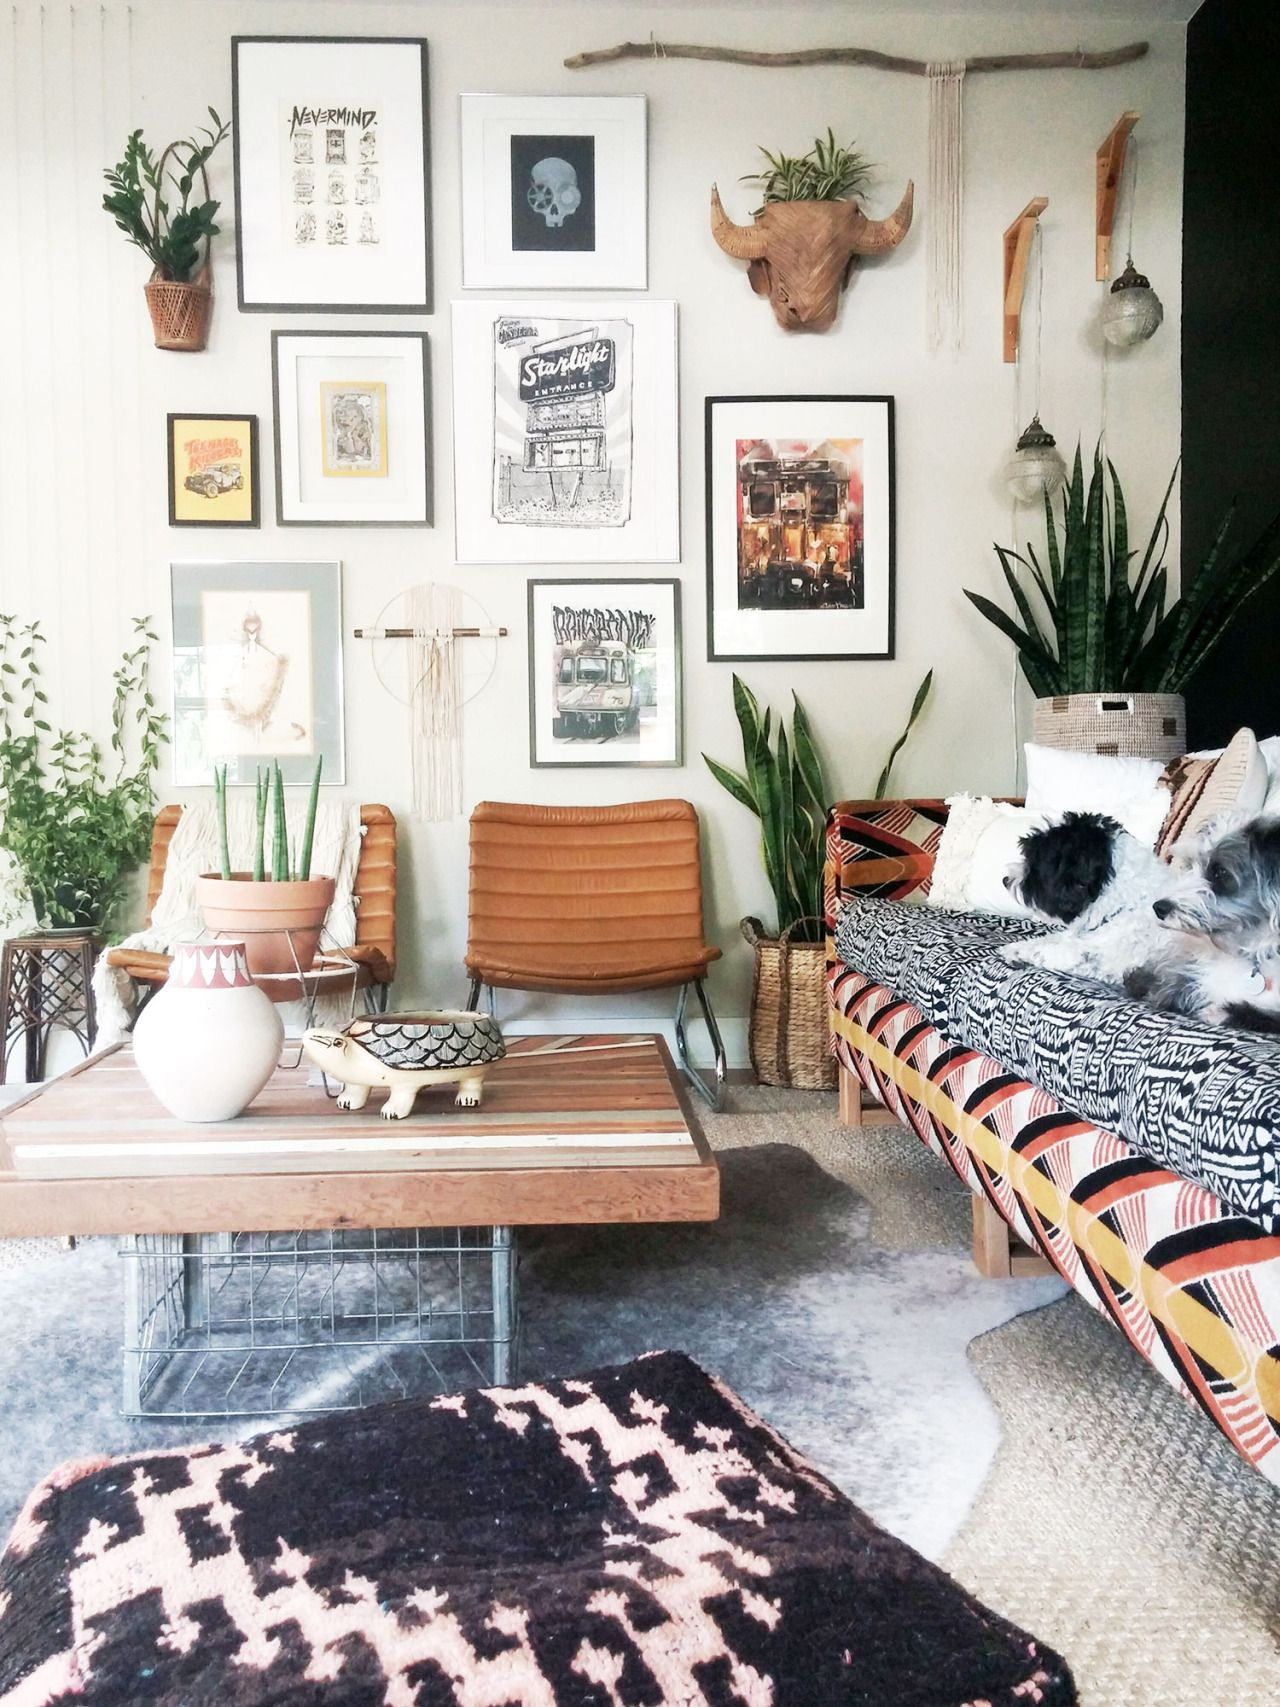 Bohemian living room follow gravity home blog instagram - Decorating living room ideas pinterest ...